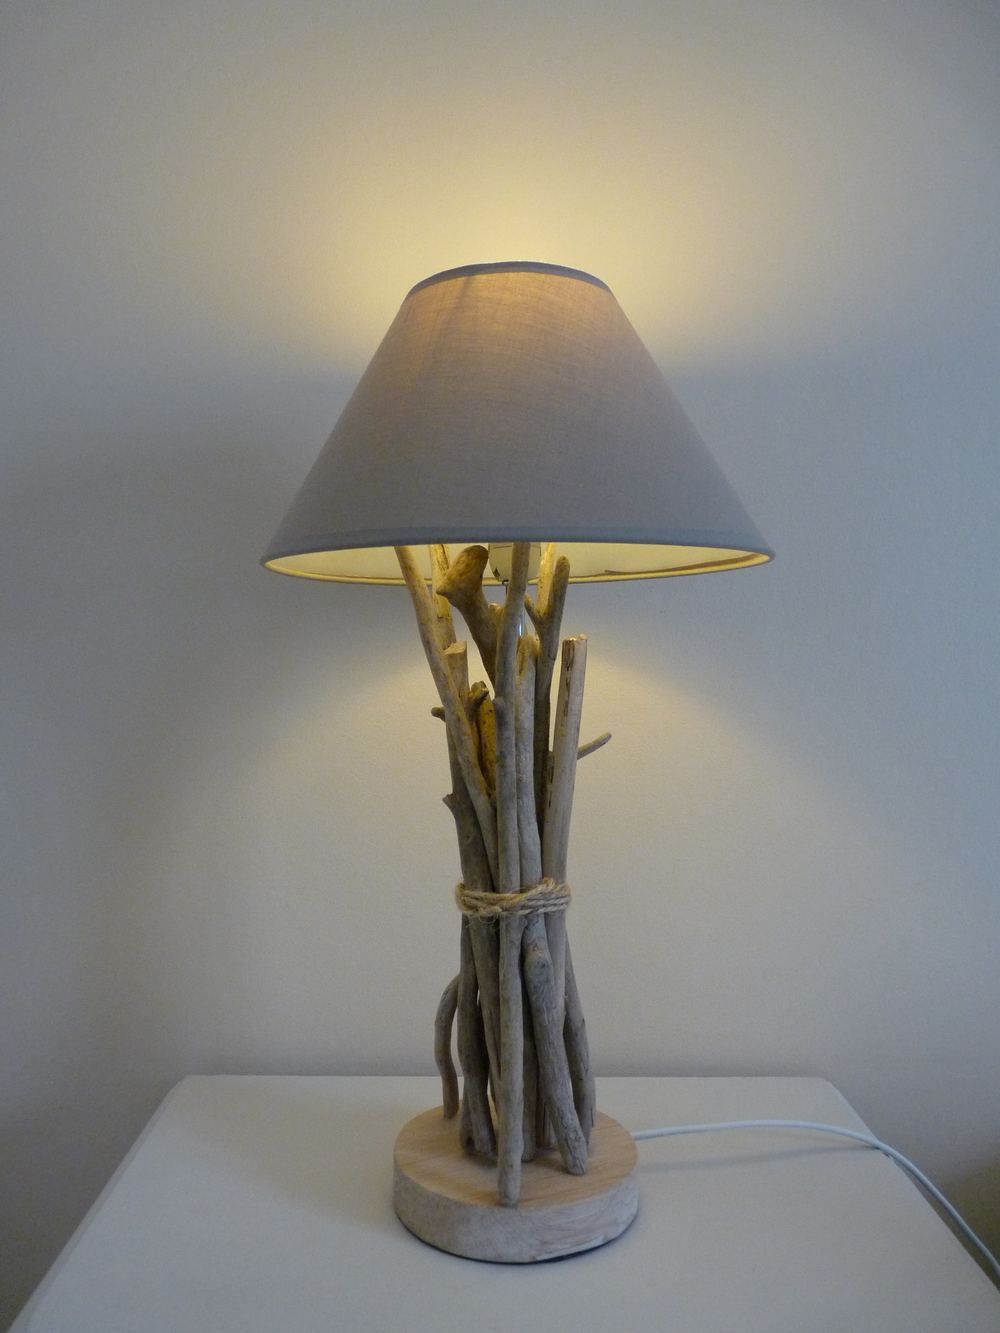 Lampe de chevet en bois flott d coration pinterest for Lampe en bois flotte creation